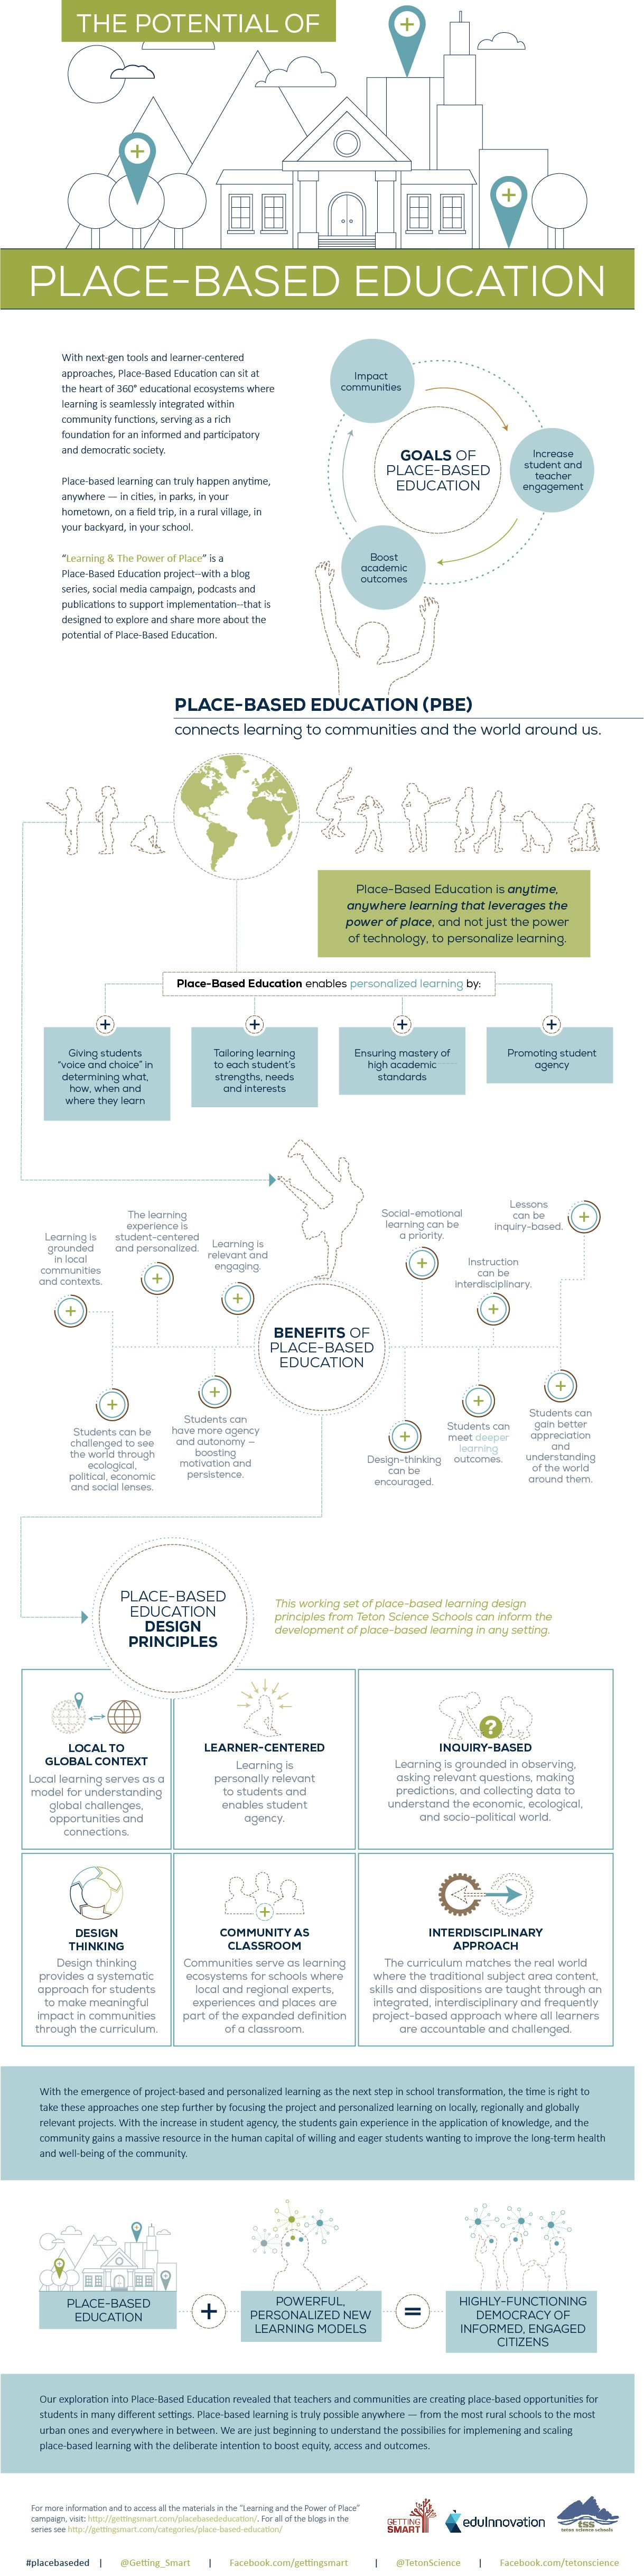 The Potential Of Place Based Education Infographic